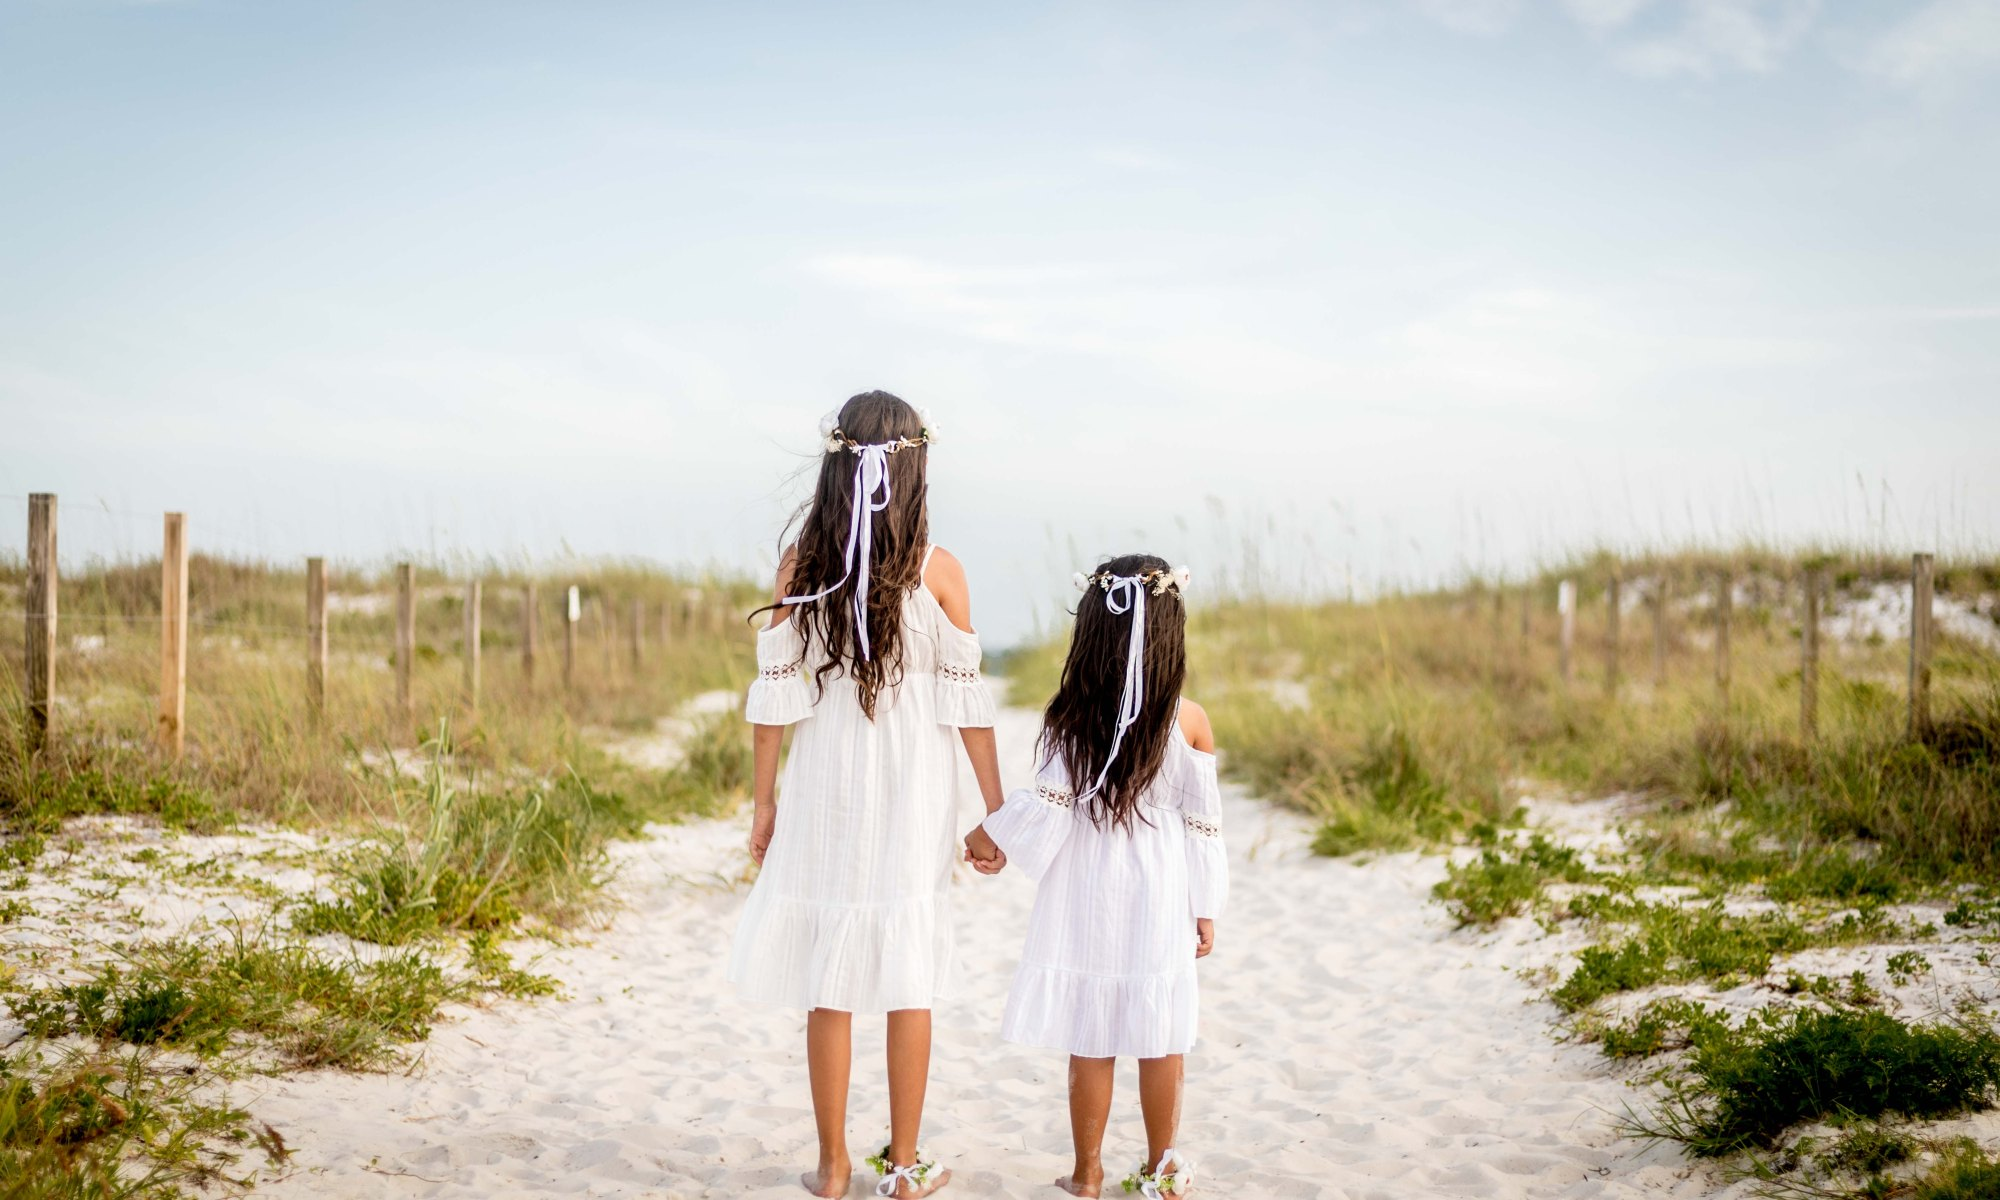 sisters on the beach for their parents' vow renewal ceremony